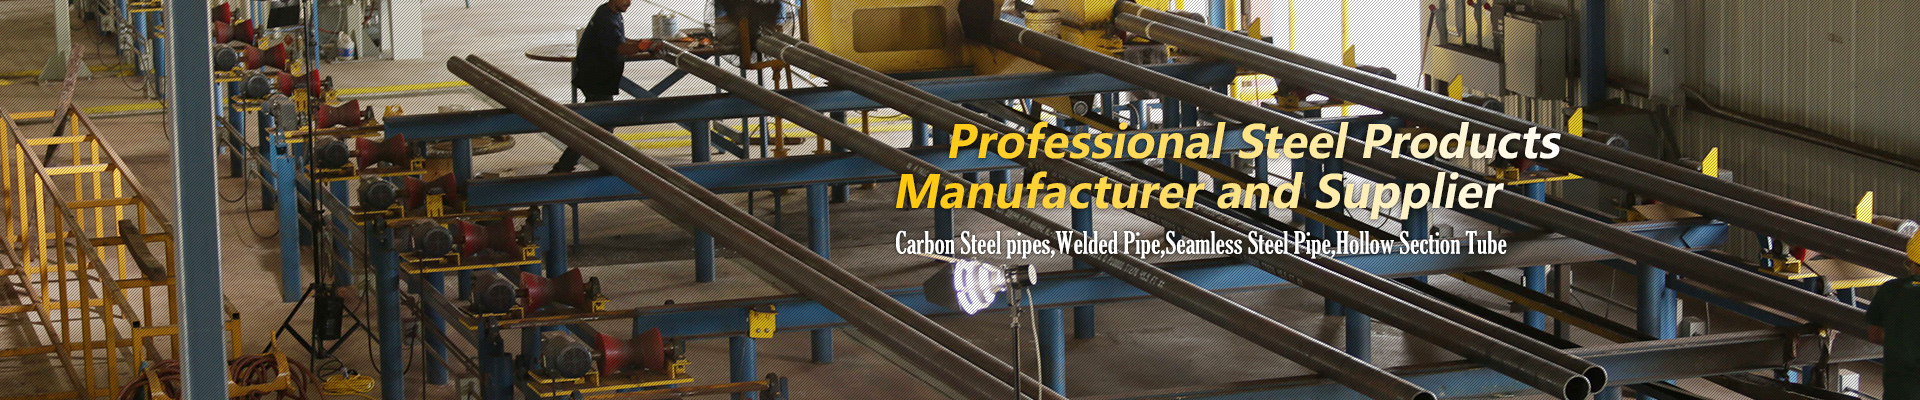 Quality Assranc,China Professional Manufacturer & Supplier of Carbon Steel pipes